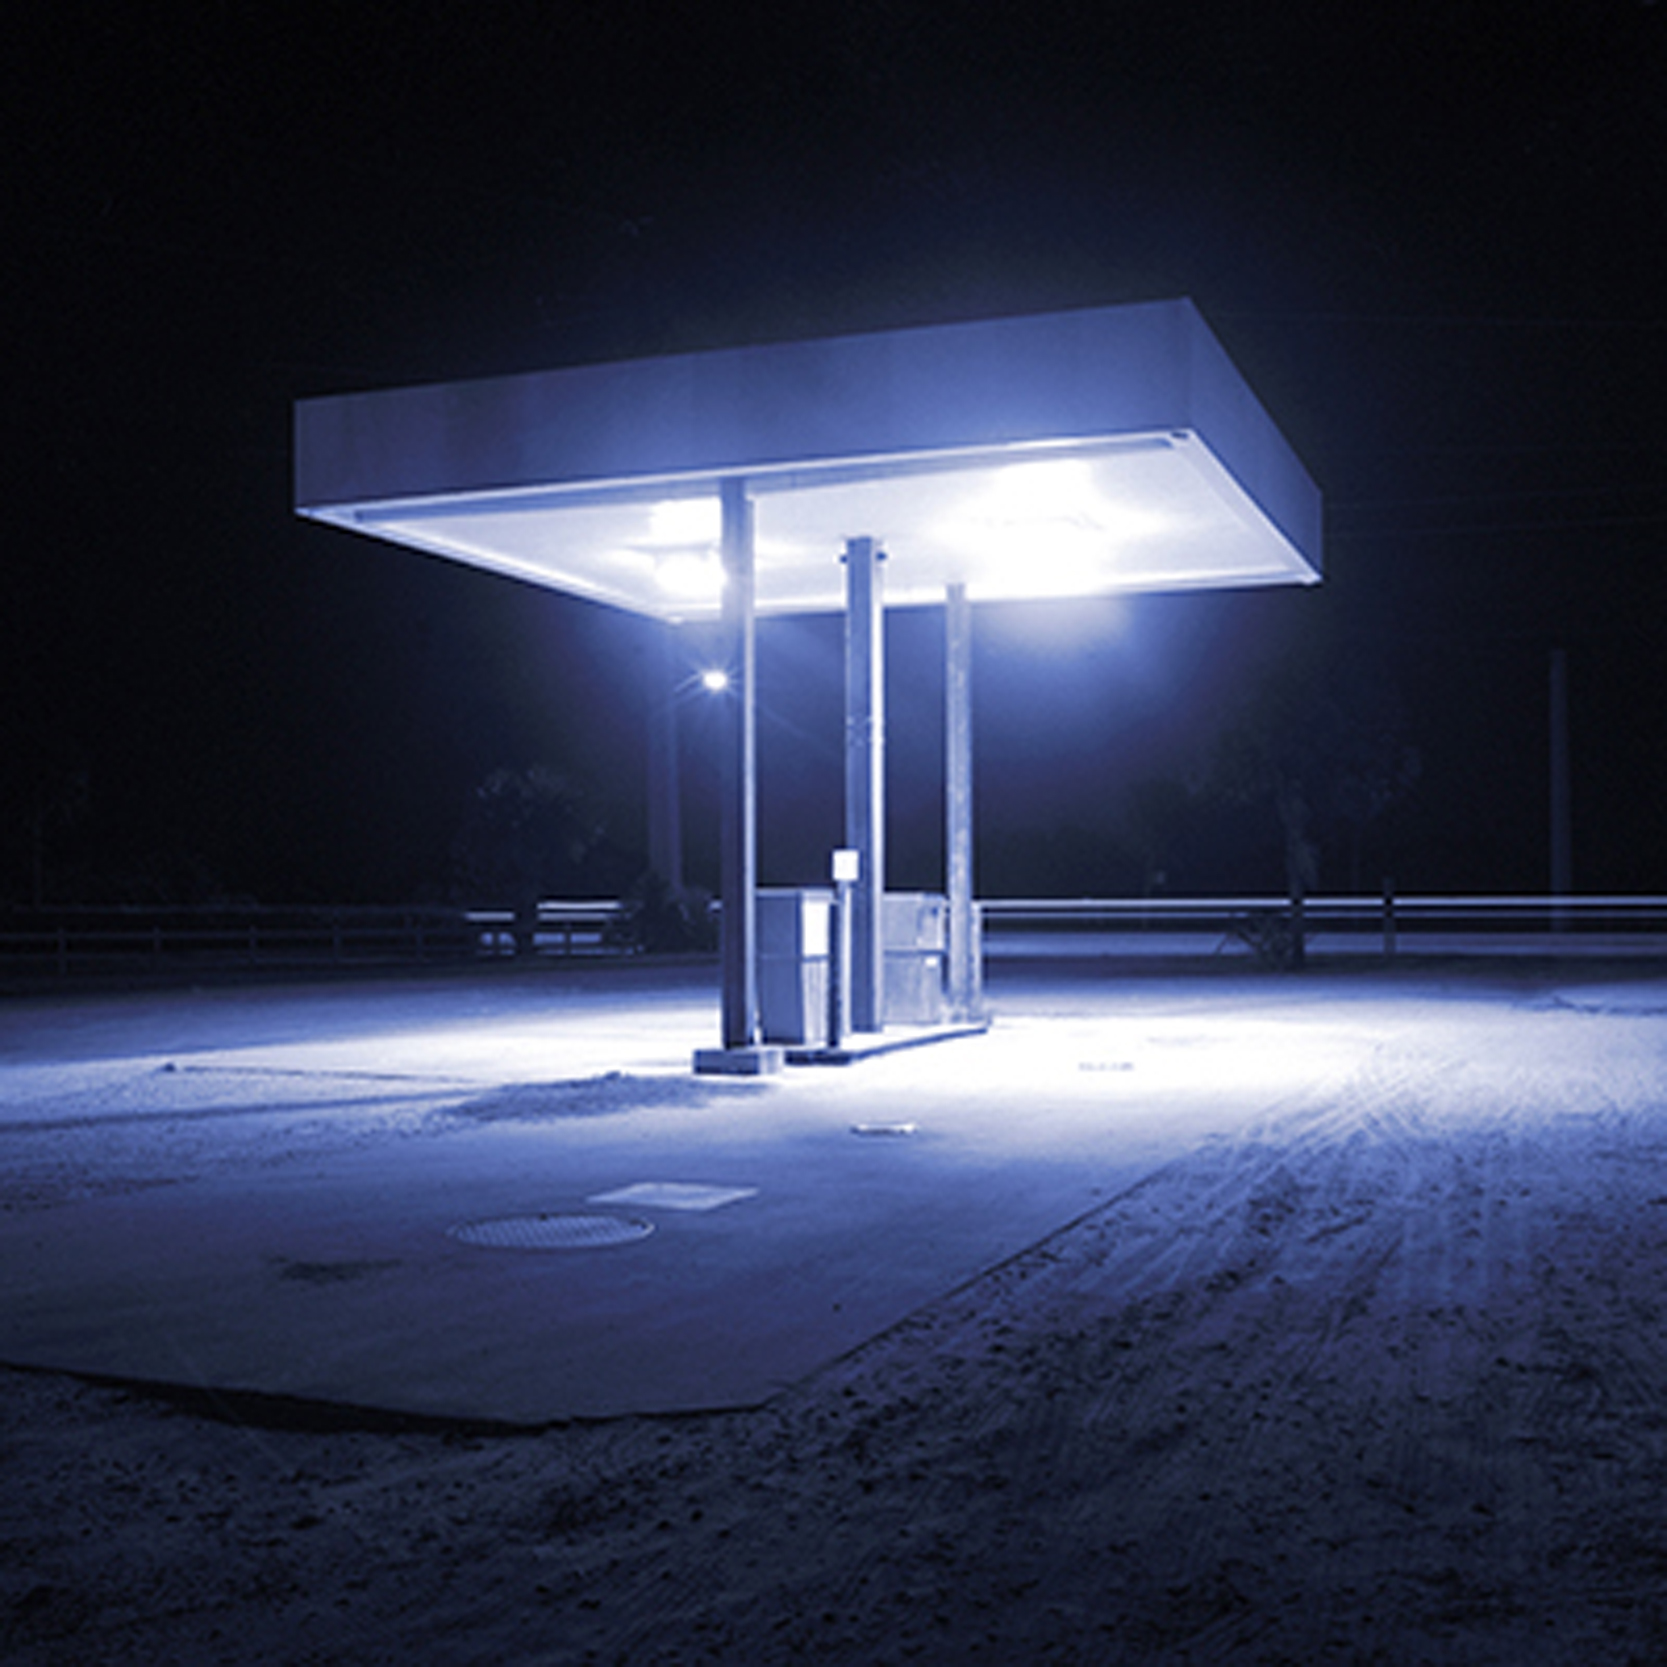 Gas Station, 15 x 15 inches / 38 x 38 cm, Fuji crystal archive print, edition of 10, 2001-2006